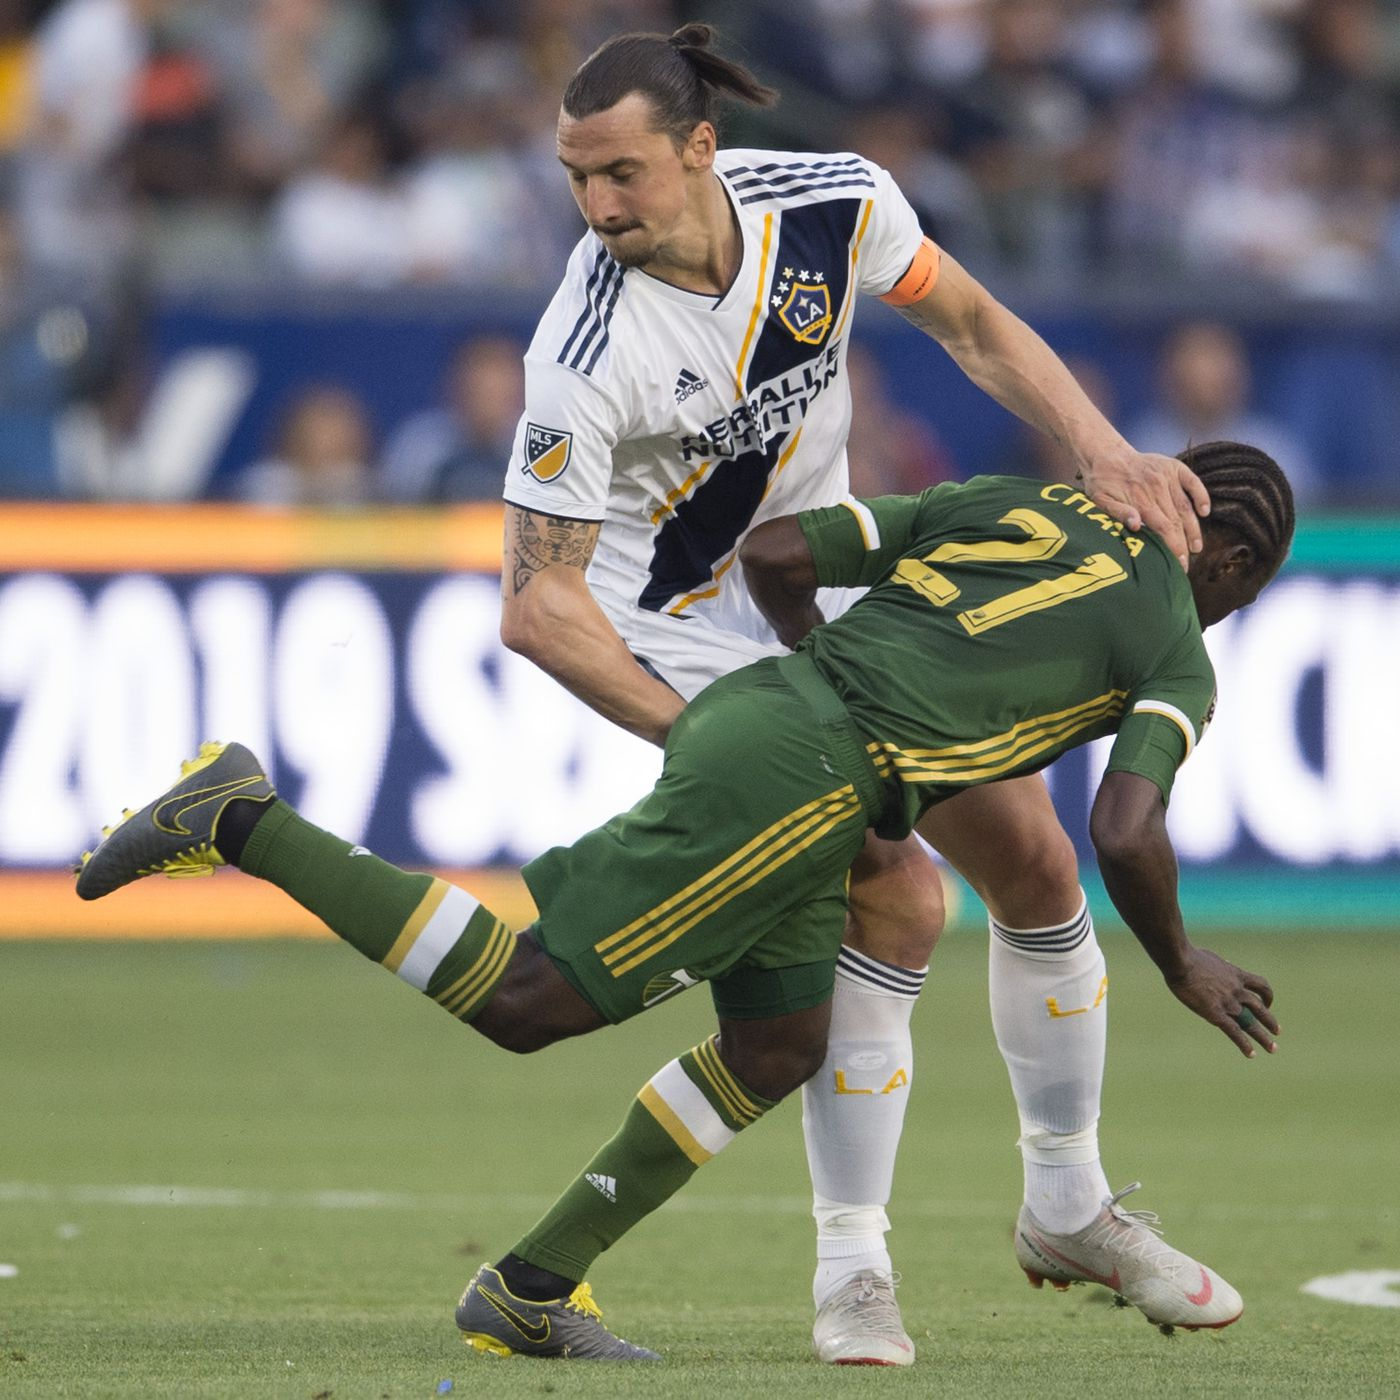 LA Galaxy at Portland Timbers match preview: What to watch